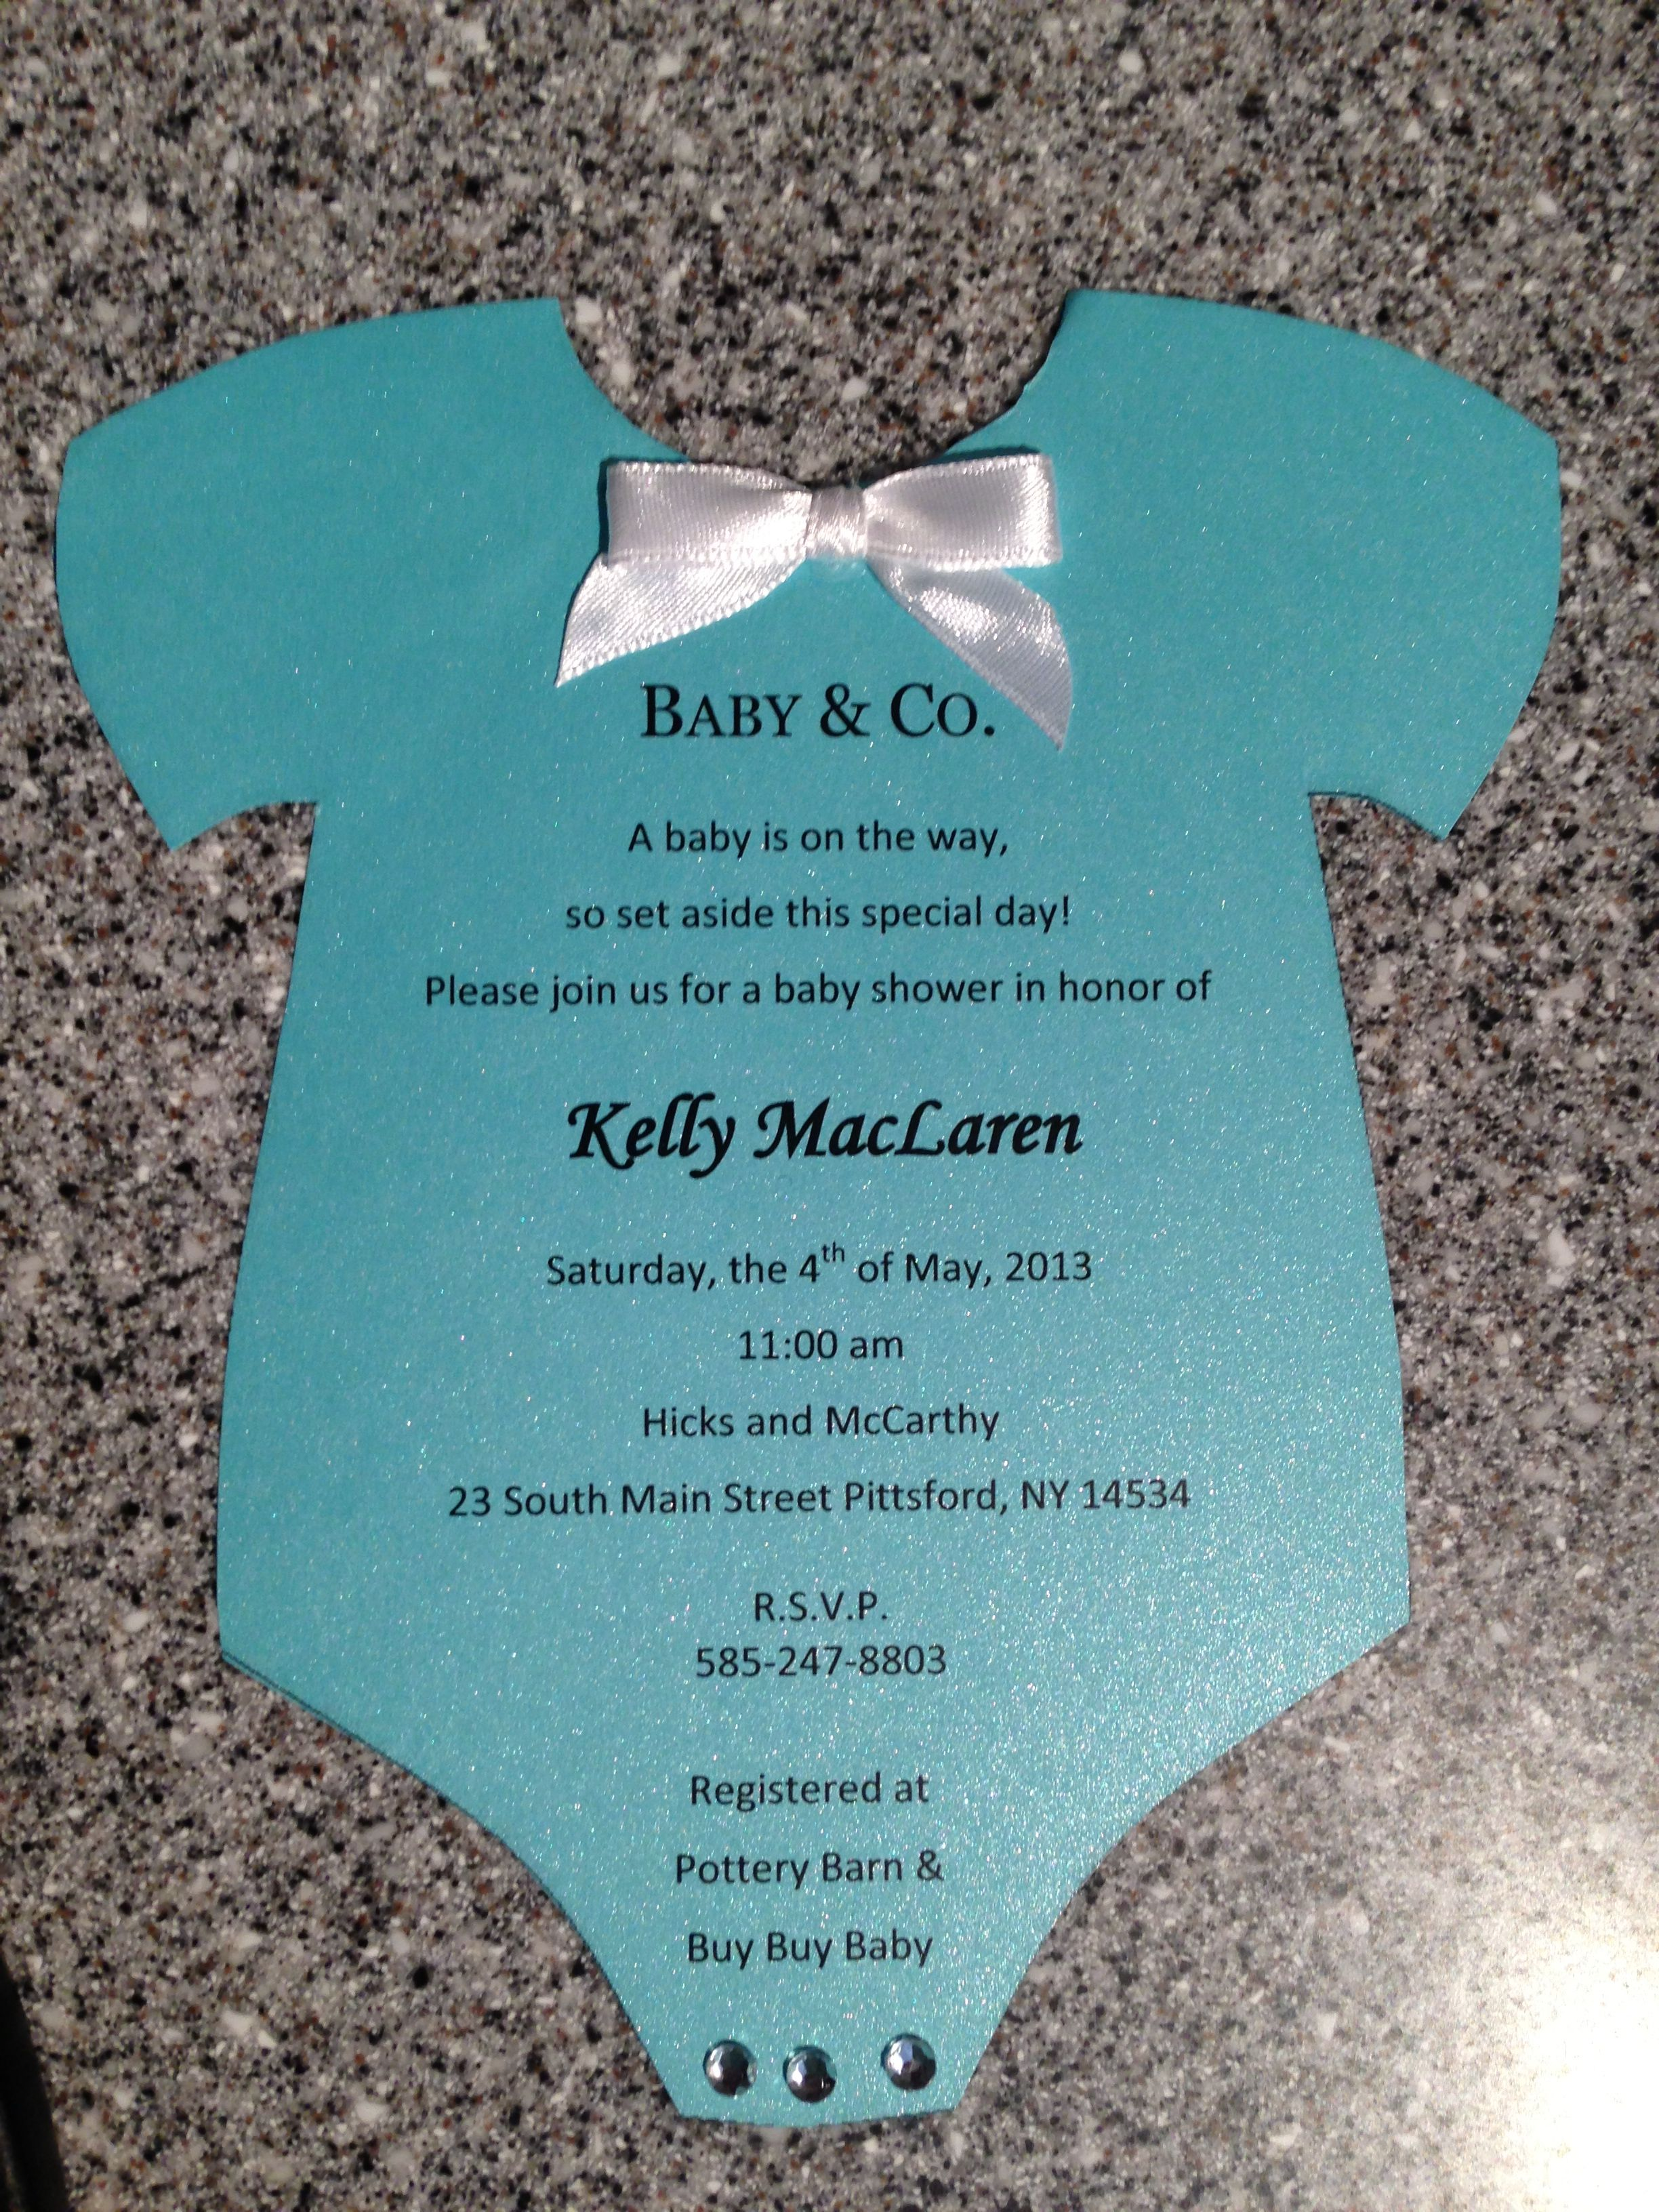 tiffany co baby shower invitation party planning ideas pintere